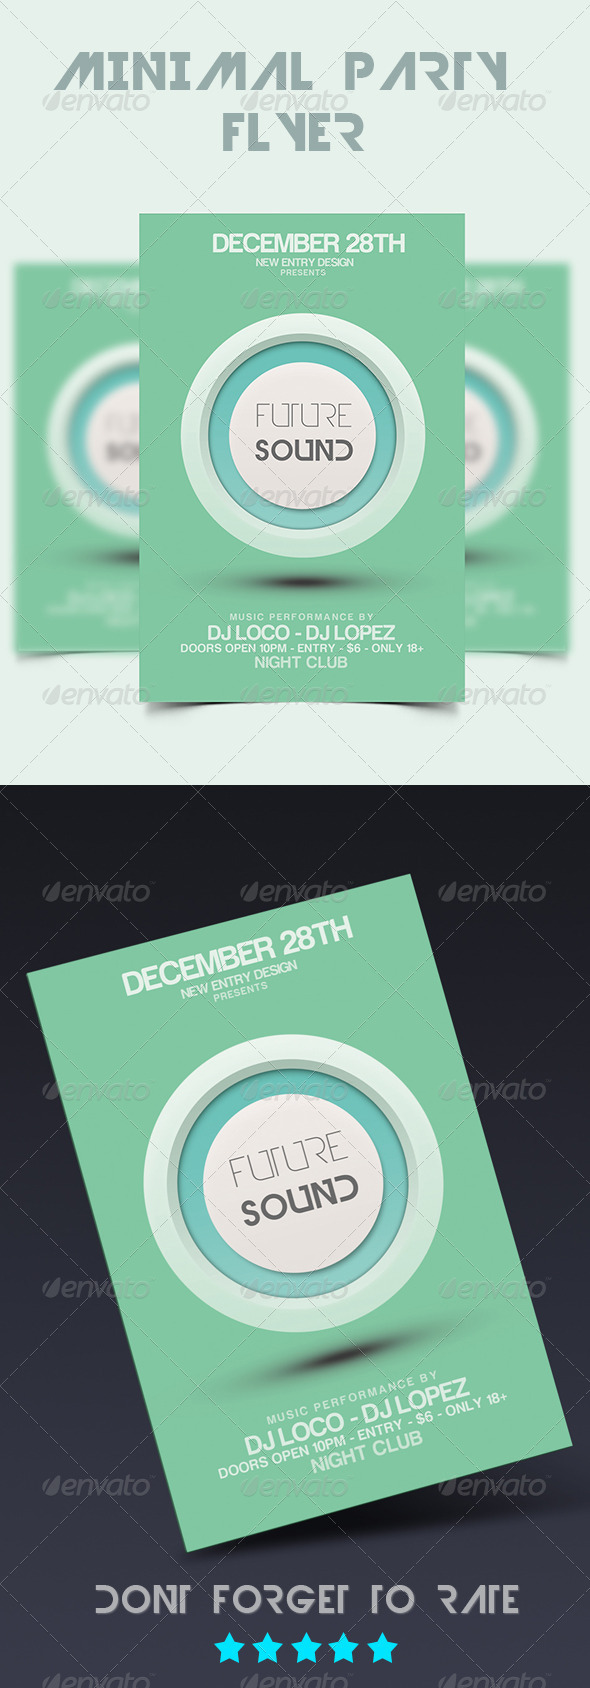 GraphicRiver Minimal Party Flyer 5754201